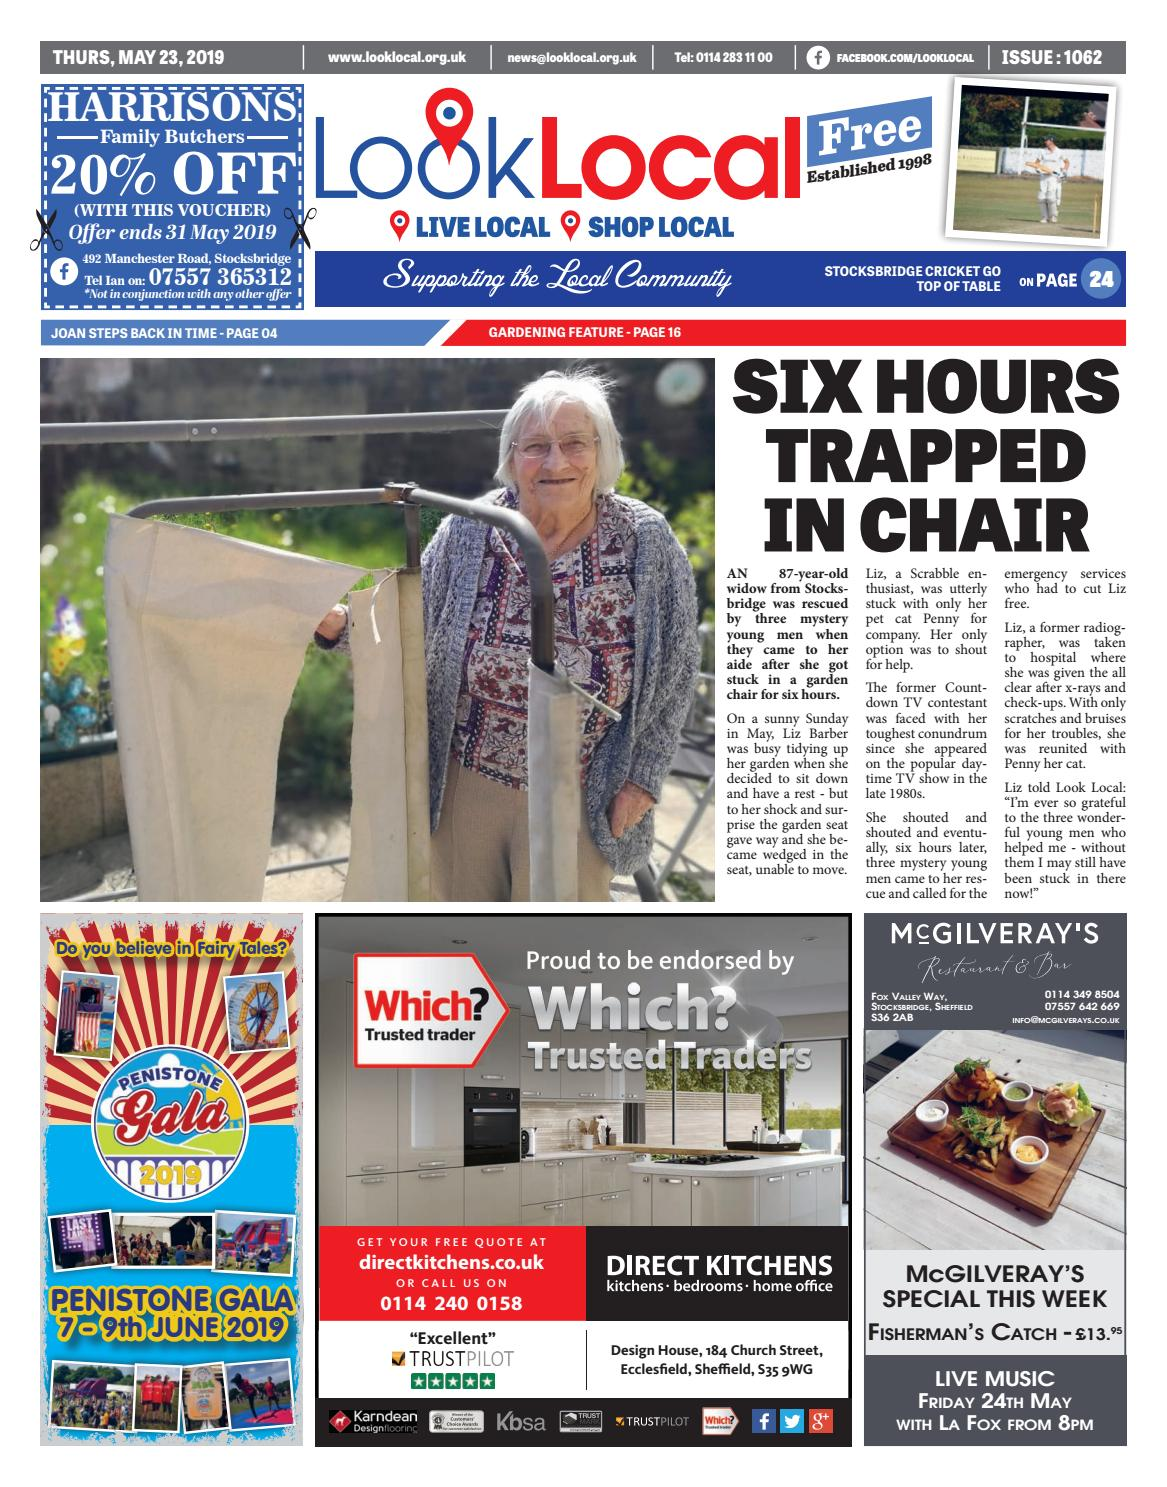 issue 1062 Thursday 23 May 2019 by Look Local Newspaper - issuu